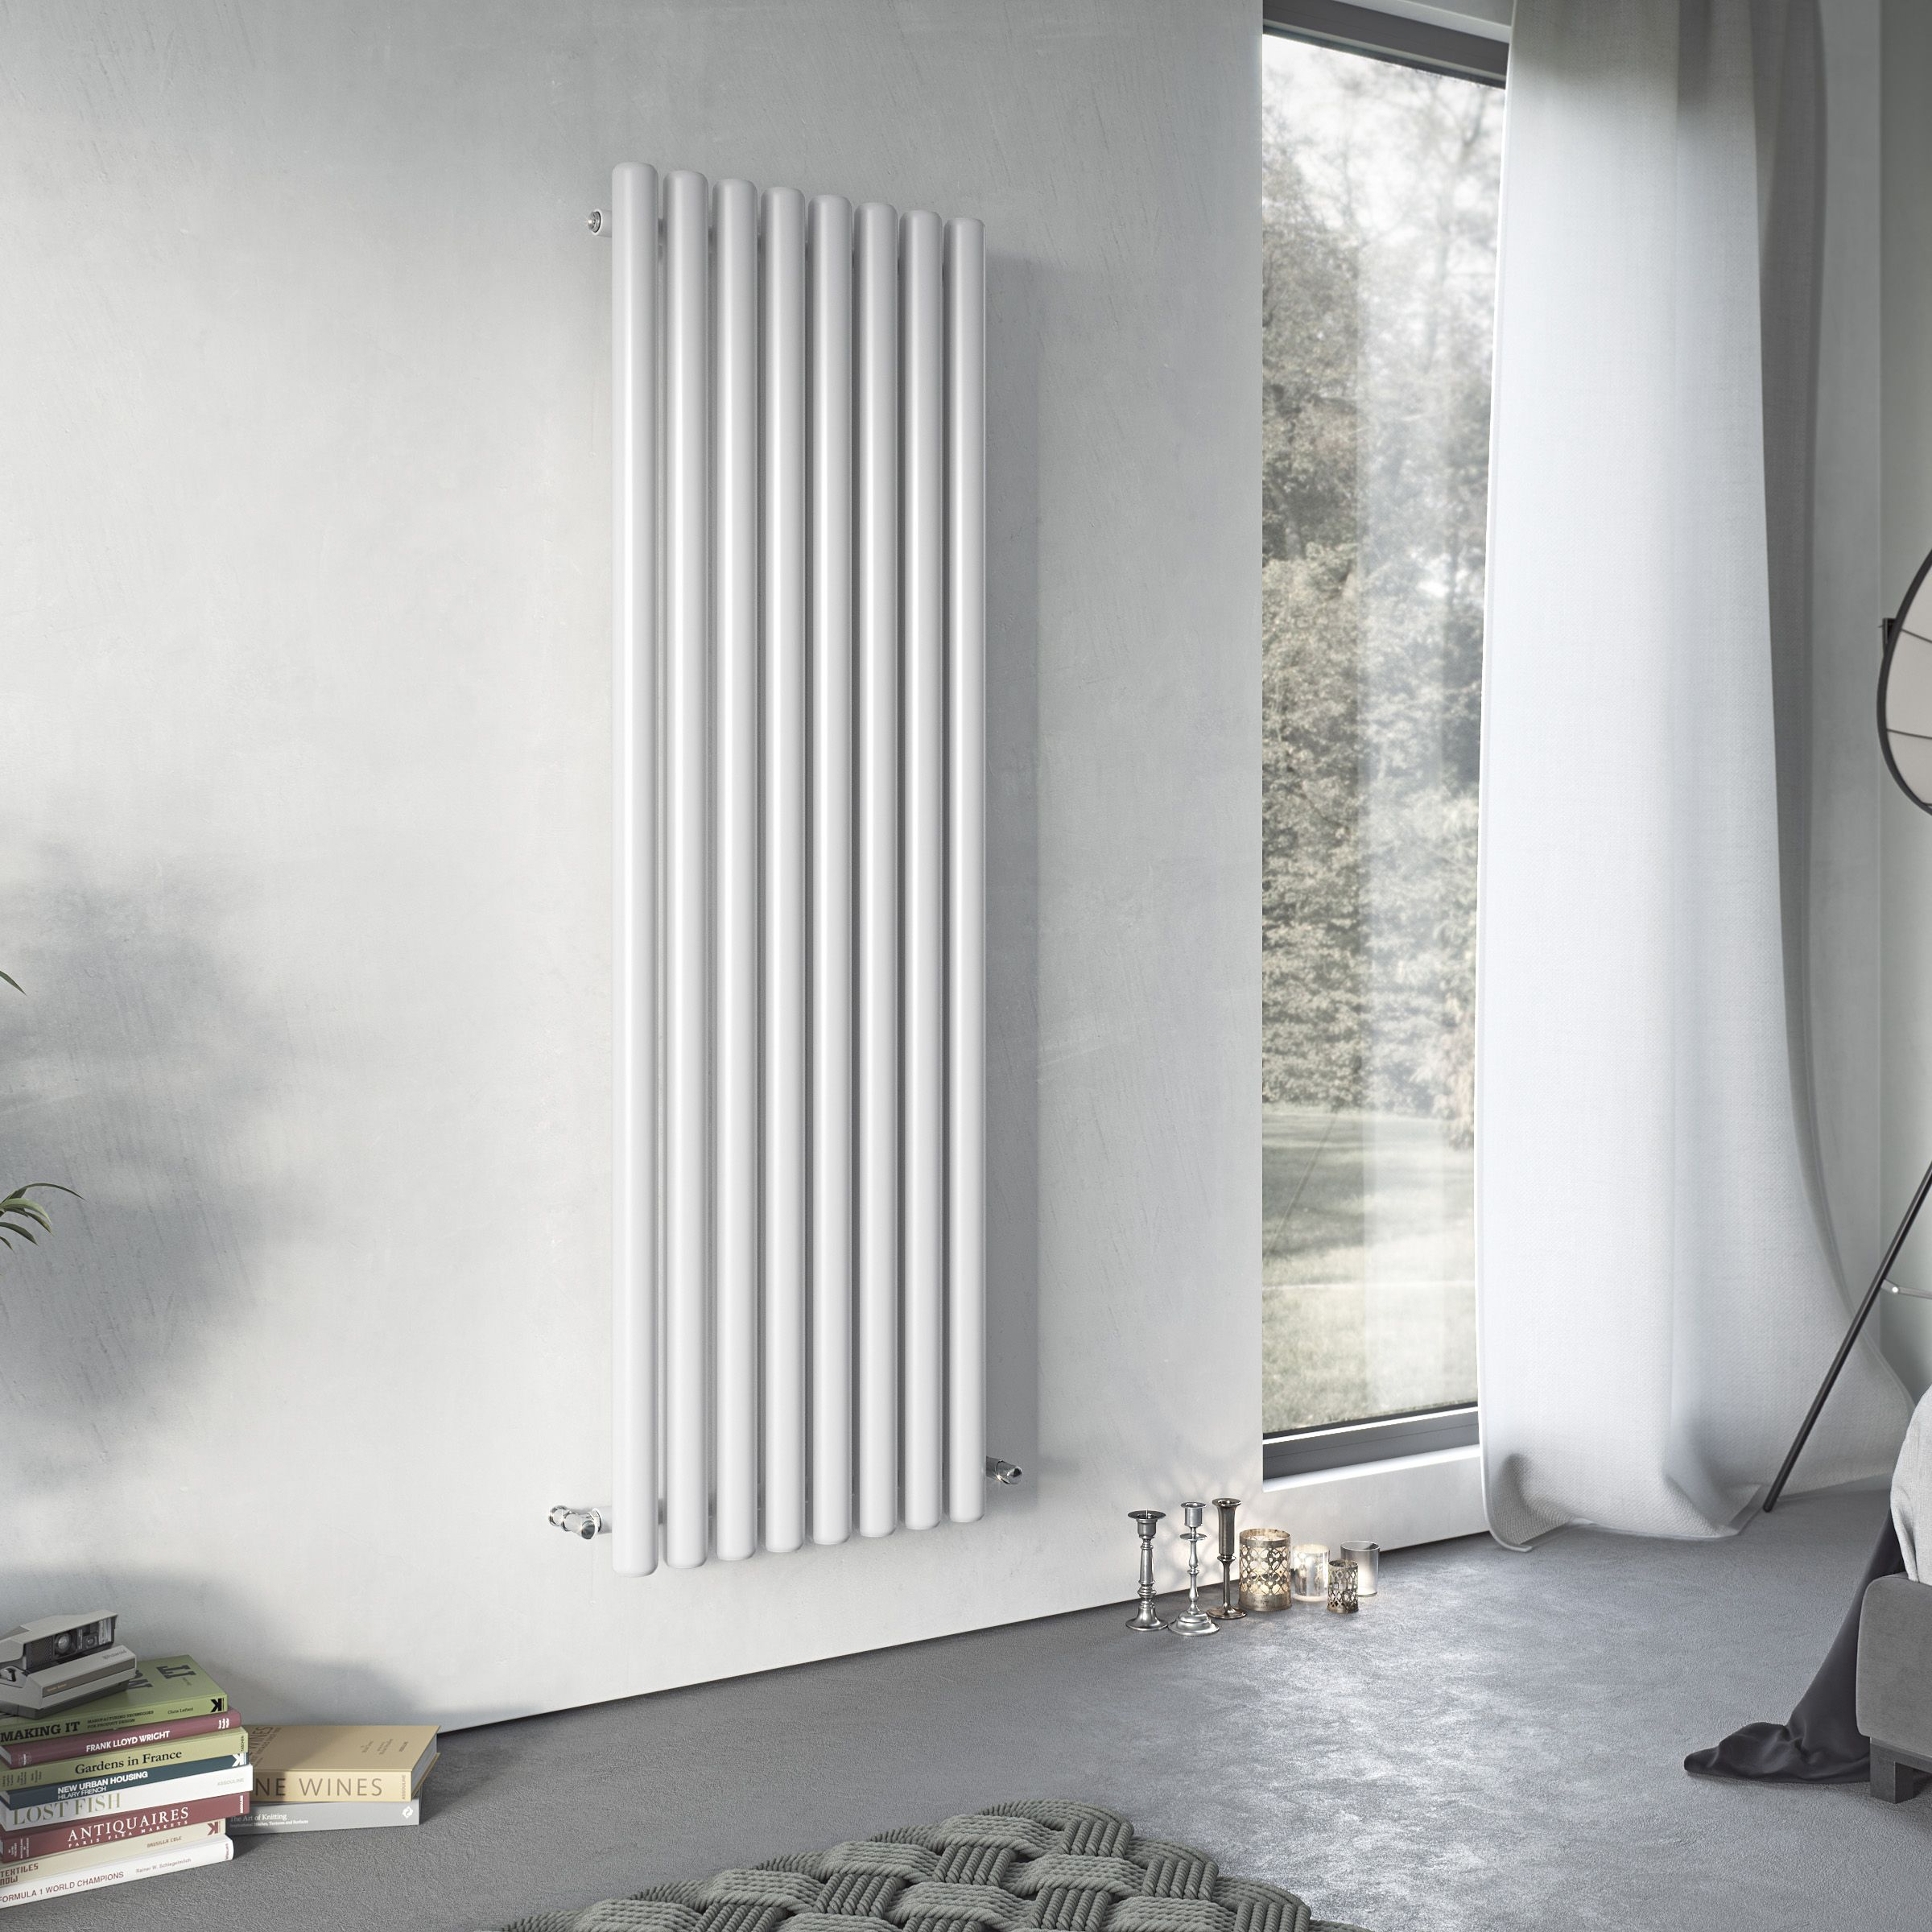 Ximax Vulkan Vertical Radiator White (H)1500 mm (W)435